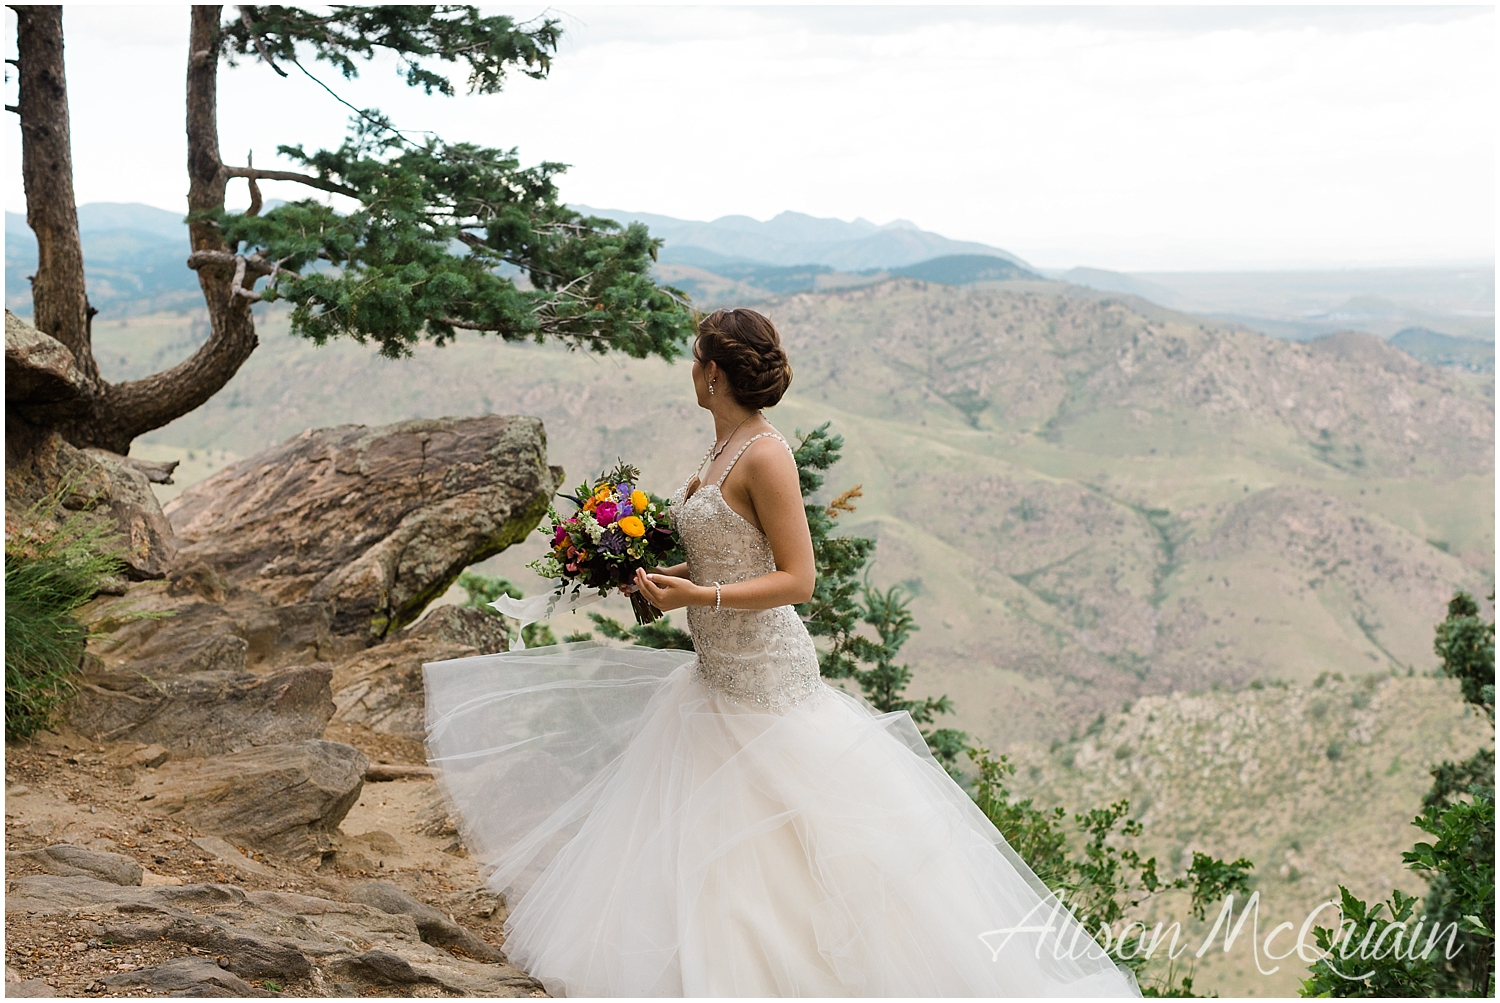 AandJ_Wedding_BoettcherMansion_Golden_Colorado_6_2018_AMP_0060.jpg